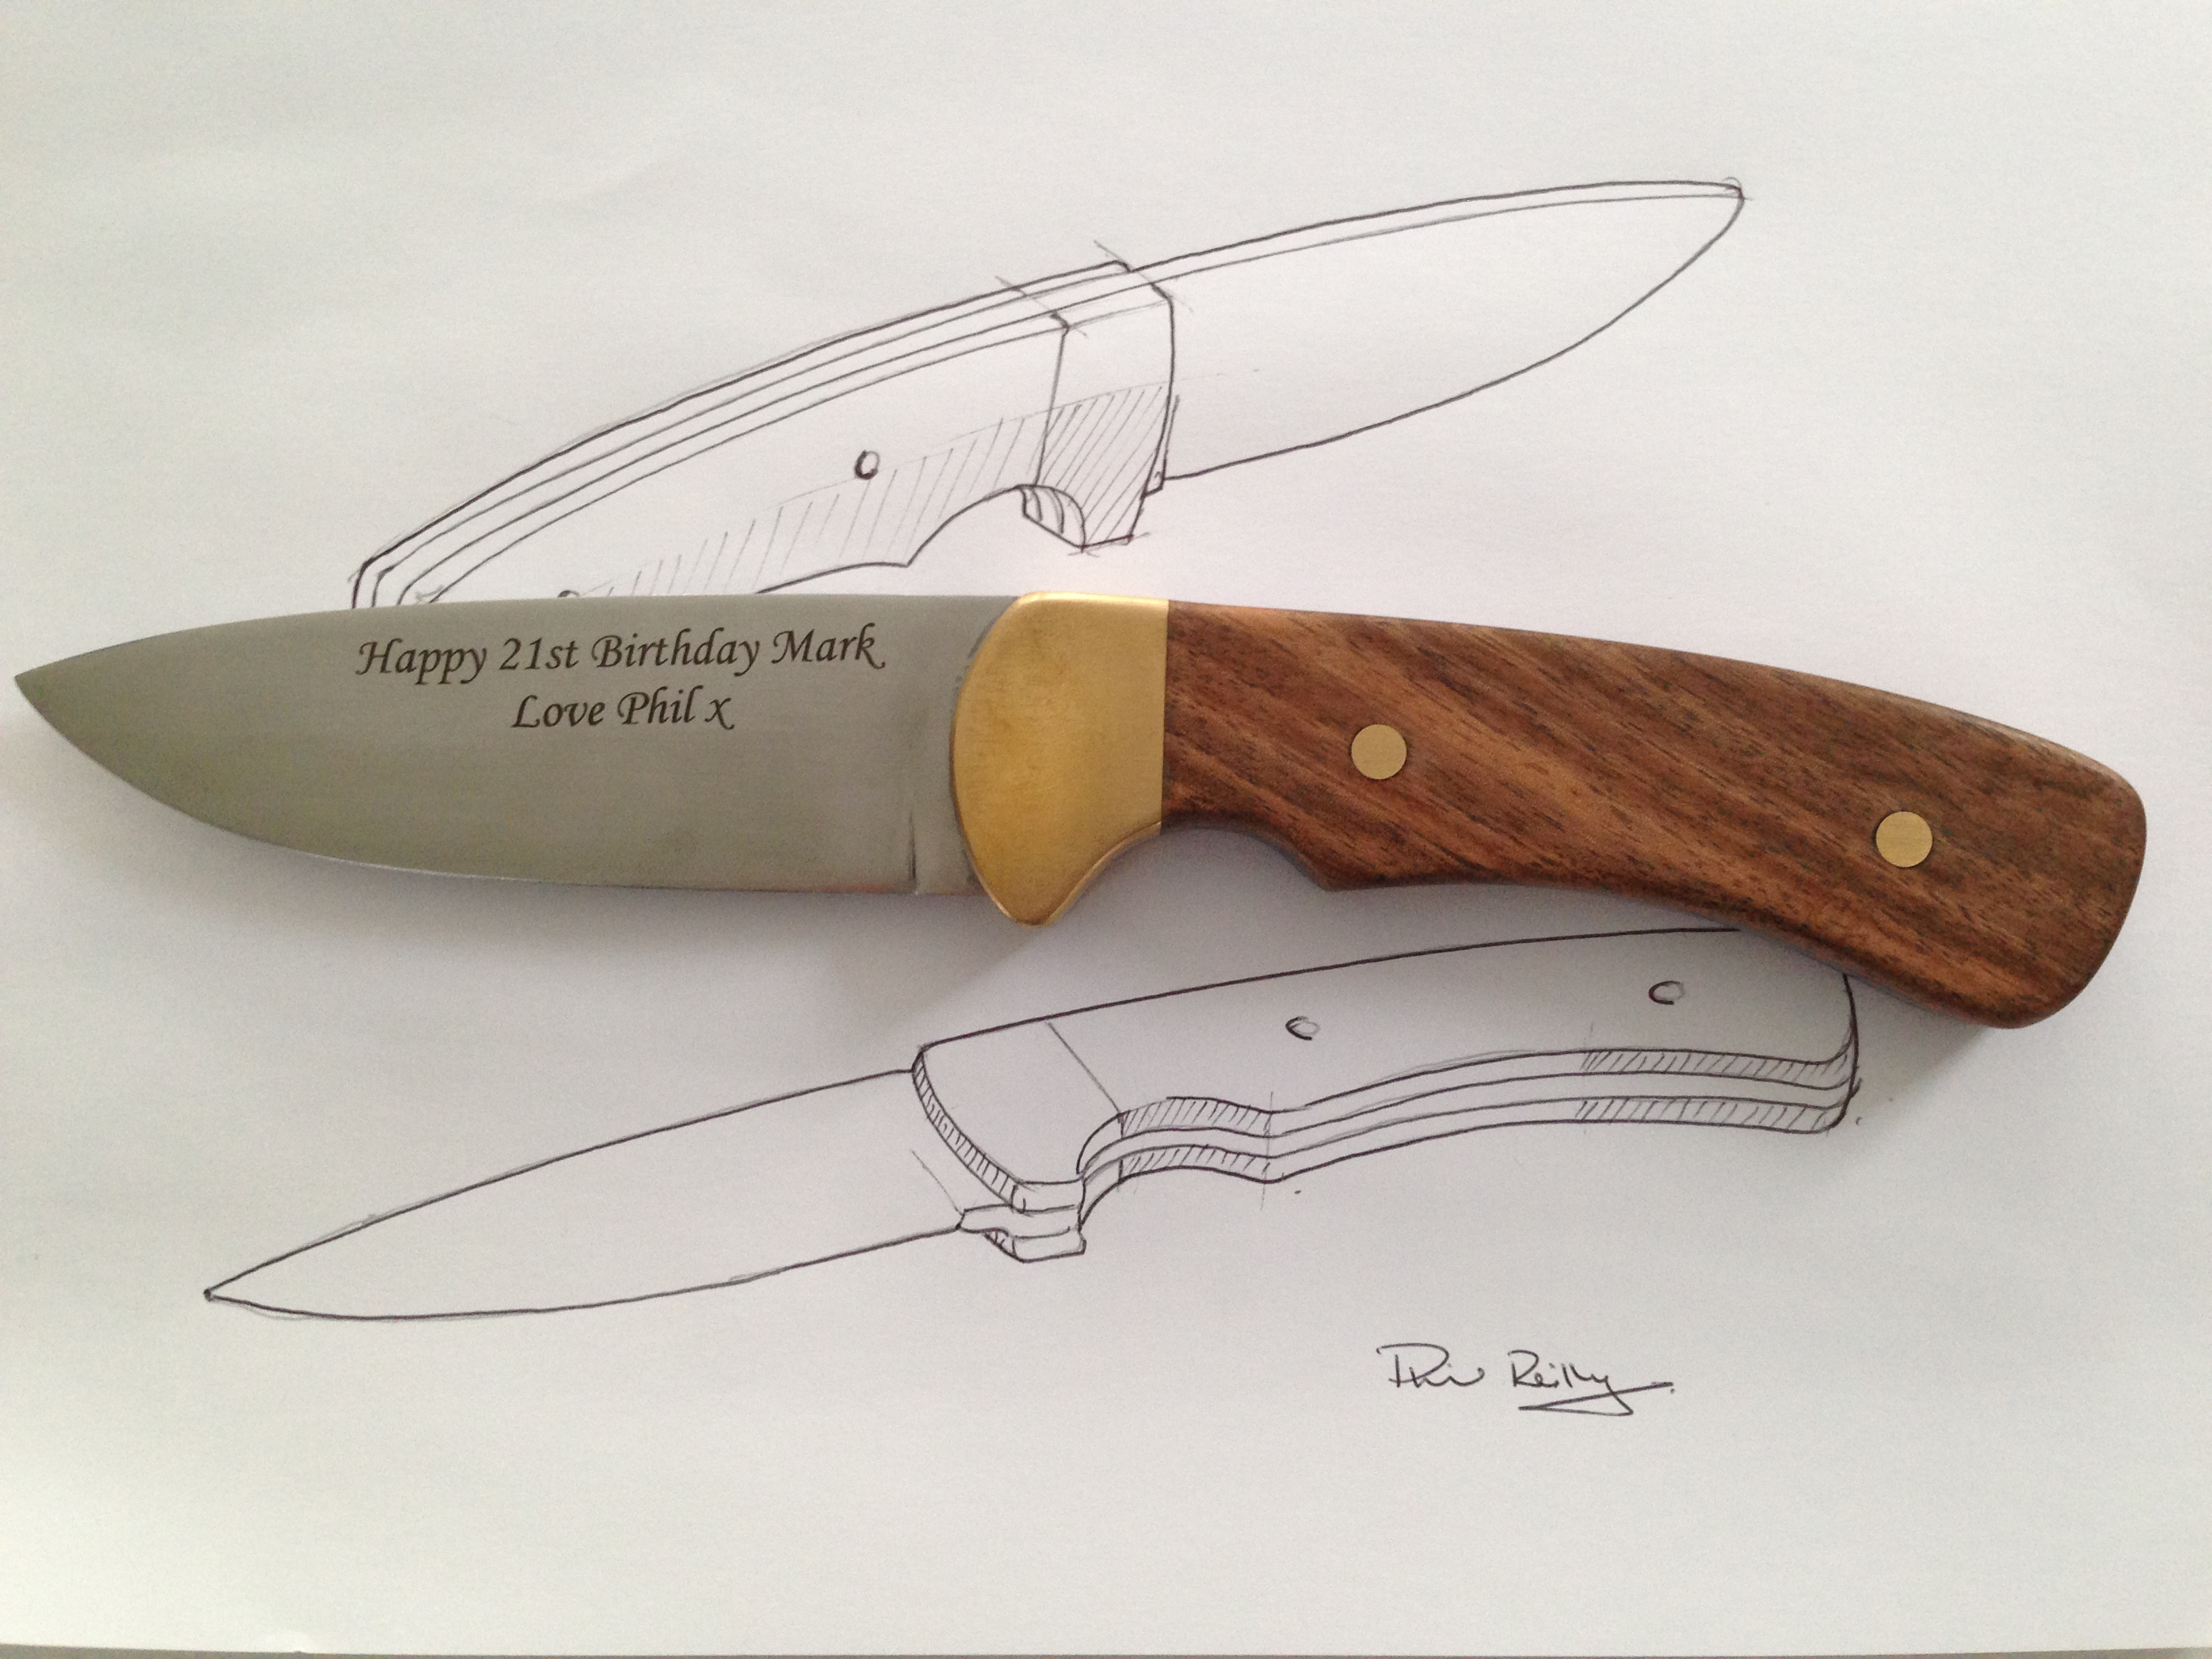 Picture of Knife Complete!